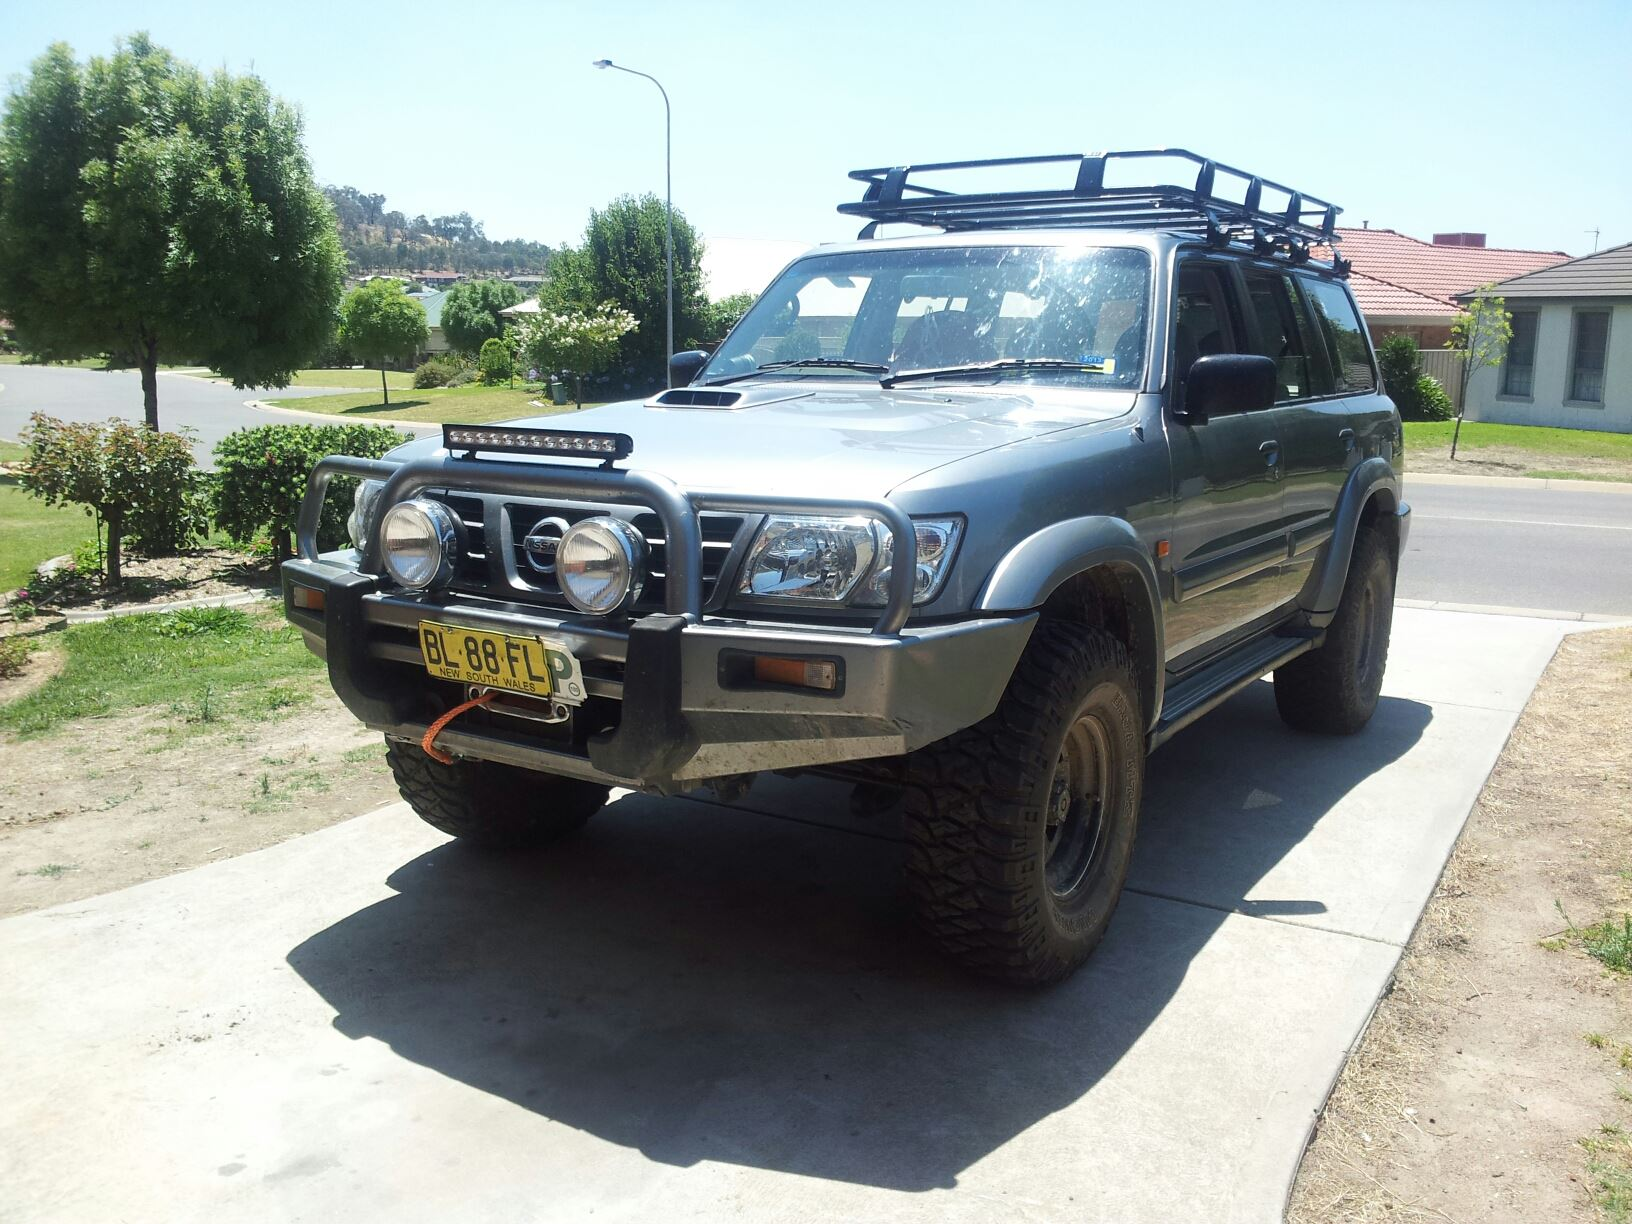 2004 nissan patrol st l 4x4 gu iii boostcruising. Black Bedroom Furniture Sets. Home Design Ideas